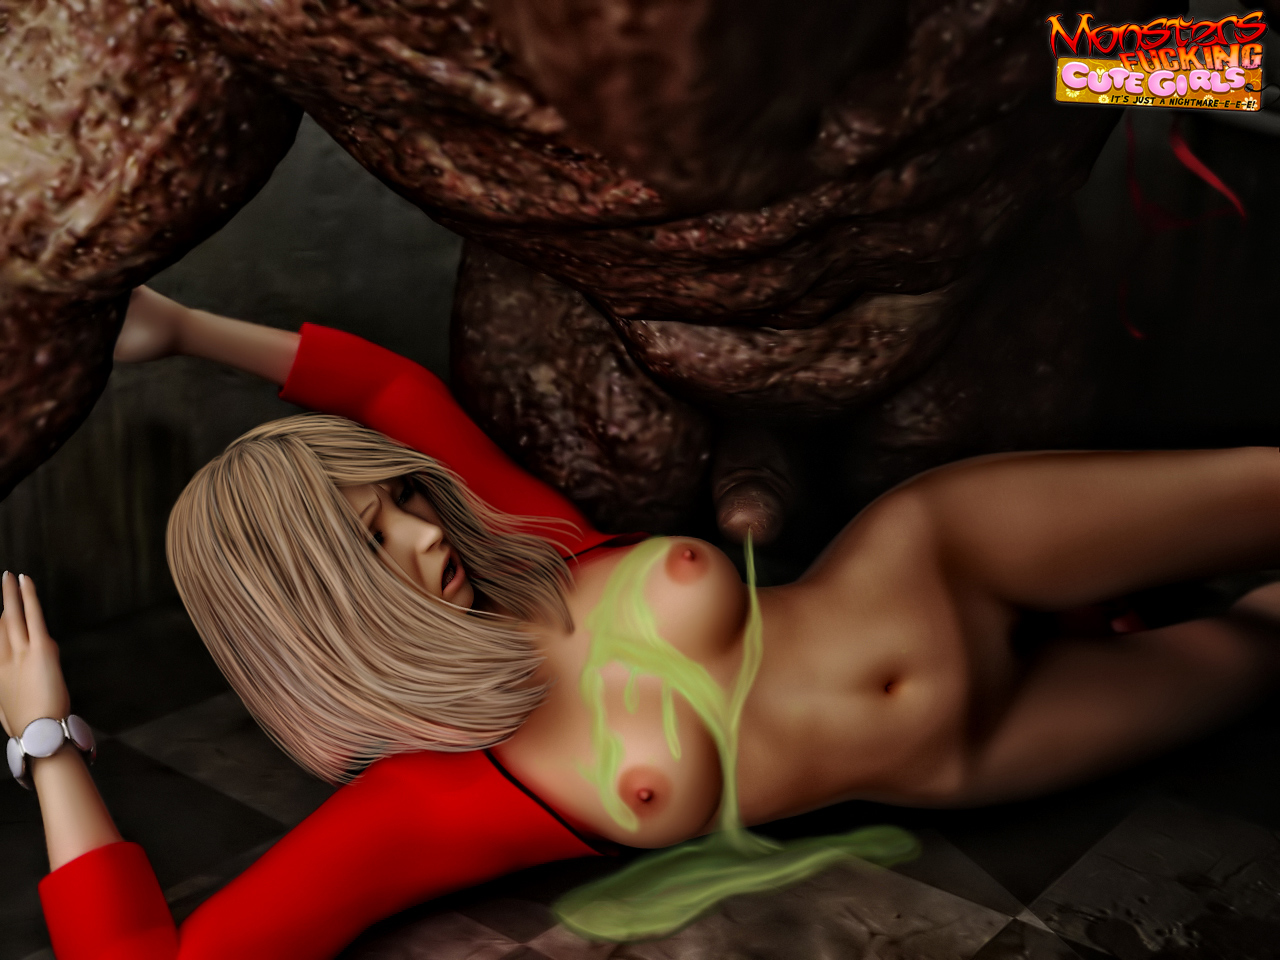 The monsters sex 3d download 3gp hentia gallery